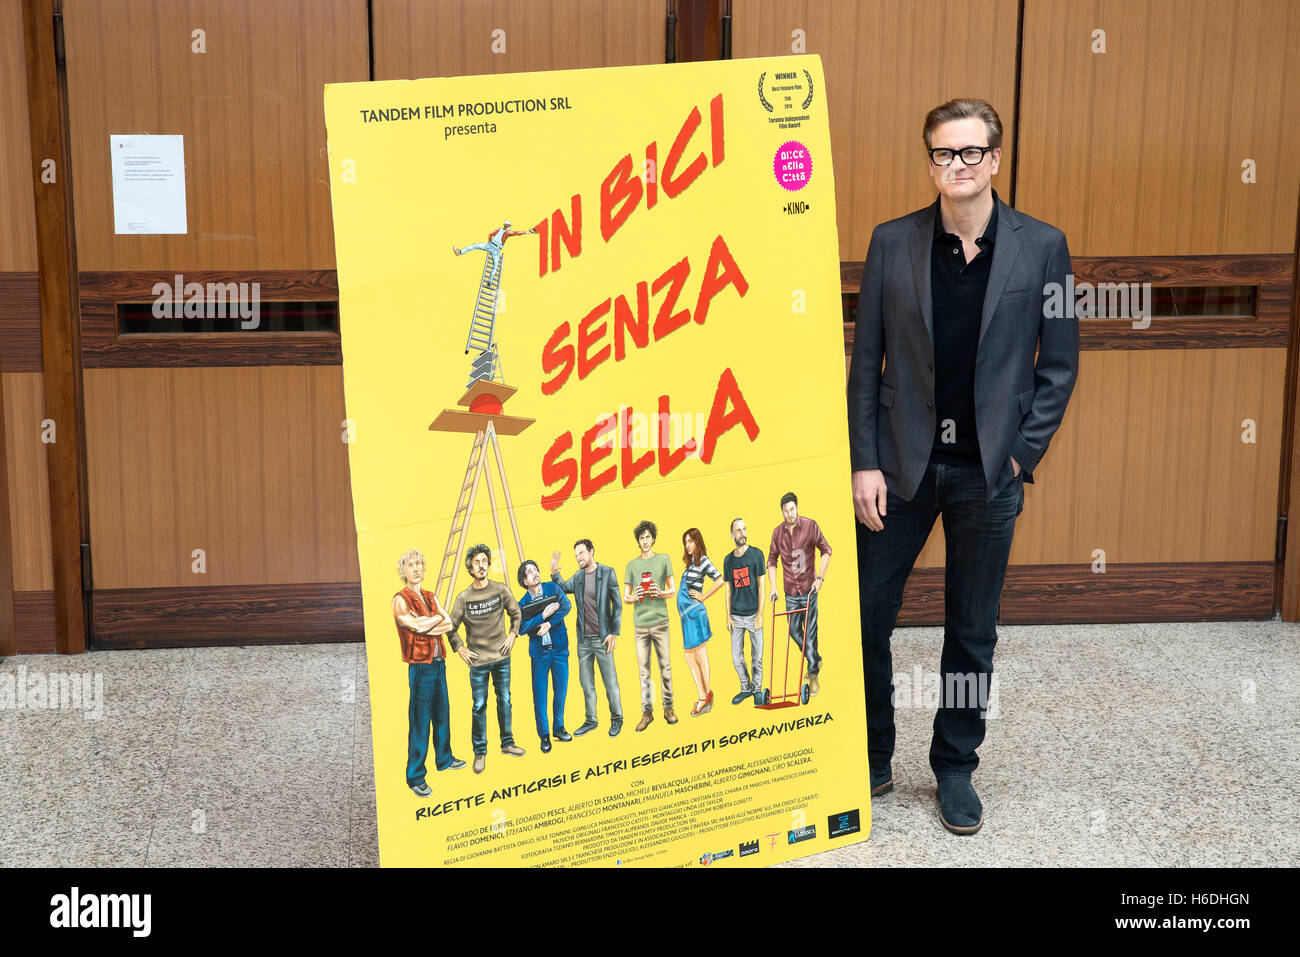 """Rome, Italy. 27th October, 2016. Colin Firth attends the photocall of """"In Bici Senza Sella"""" at Sapienza University Stock Photo"""